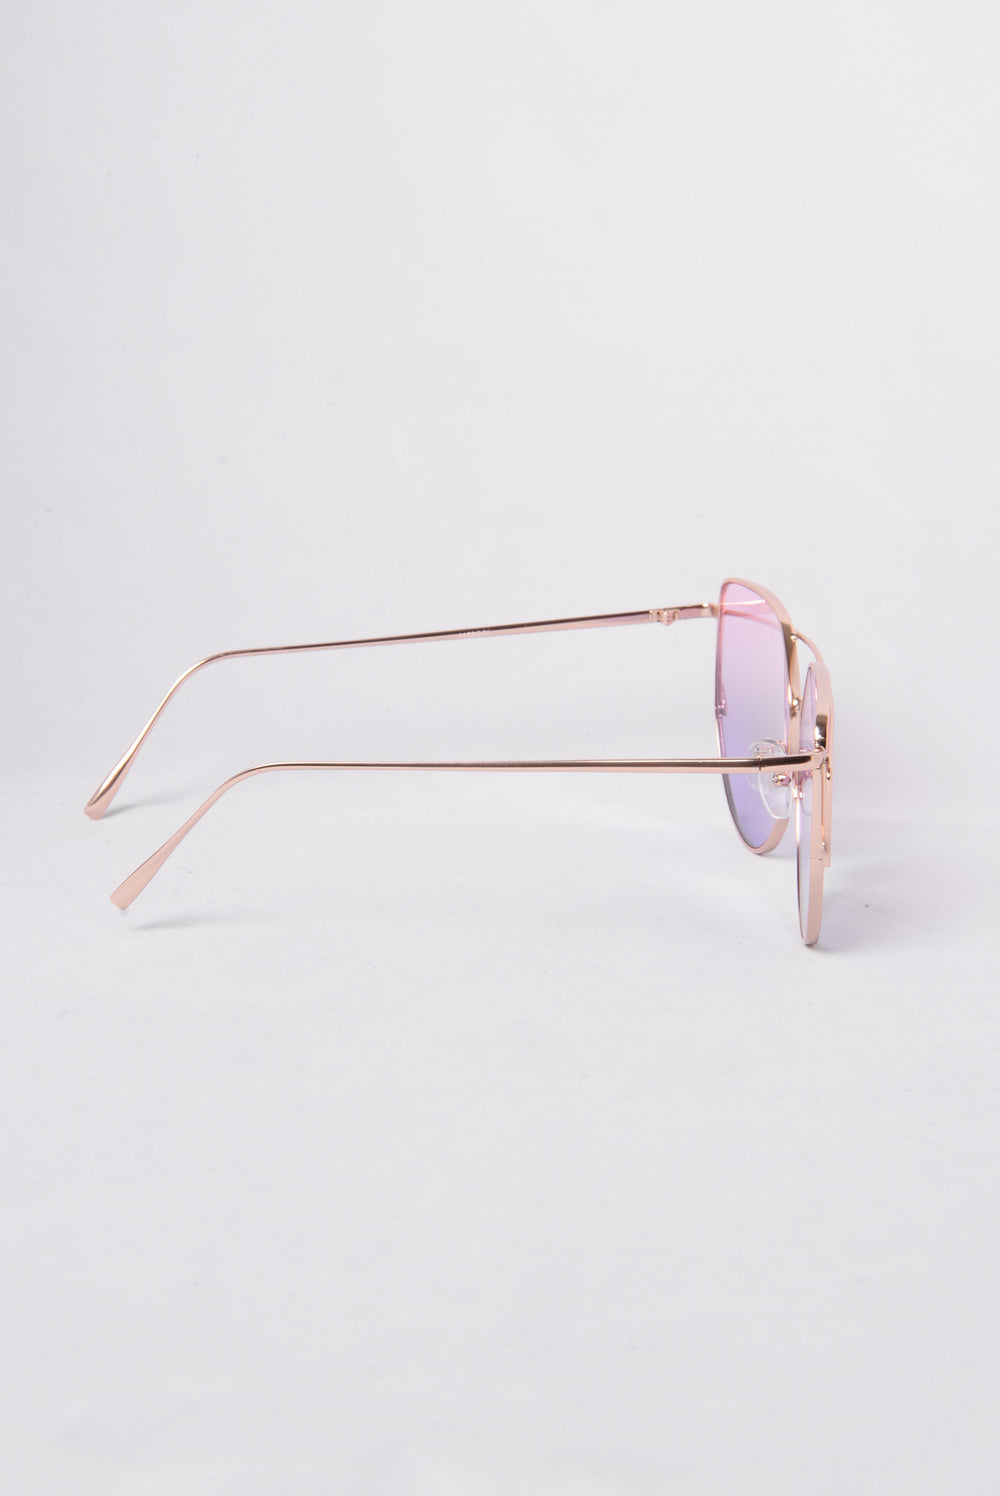 La Concha Beach Sunglasses - Gold/Pink